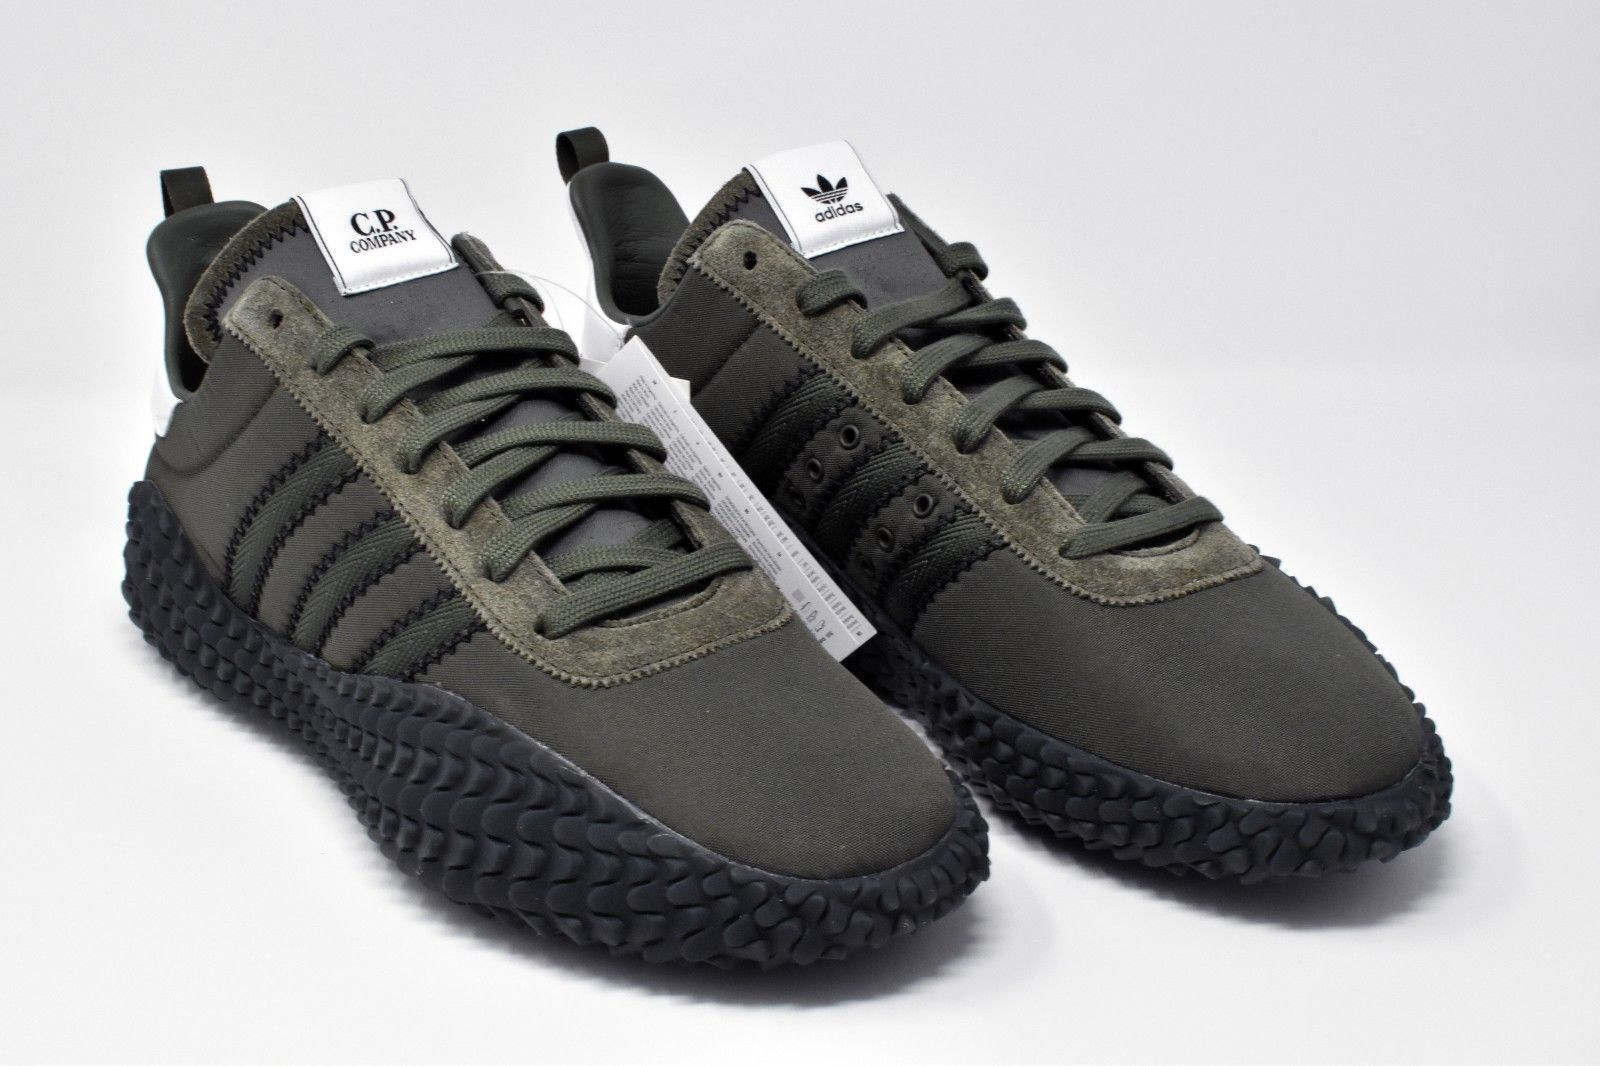 Adidas x cp company Kamanda trainers uk 10 e 44 new boxed ship worldwide